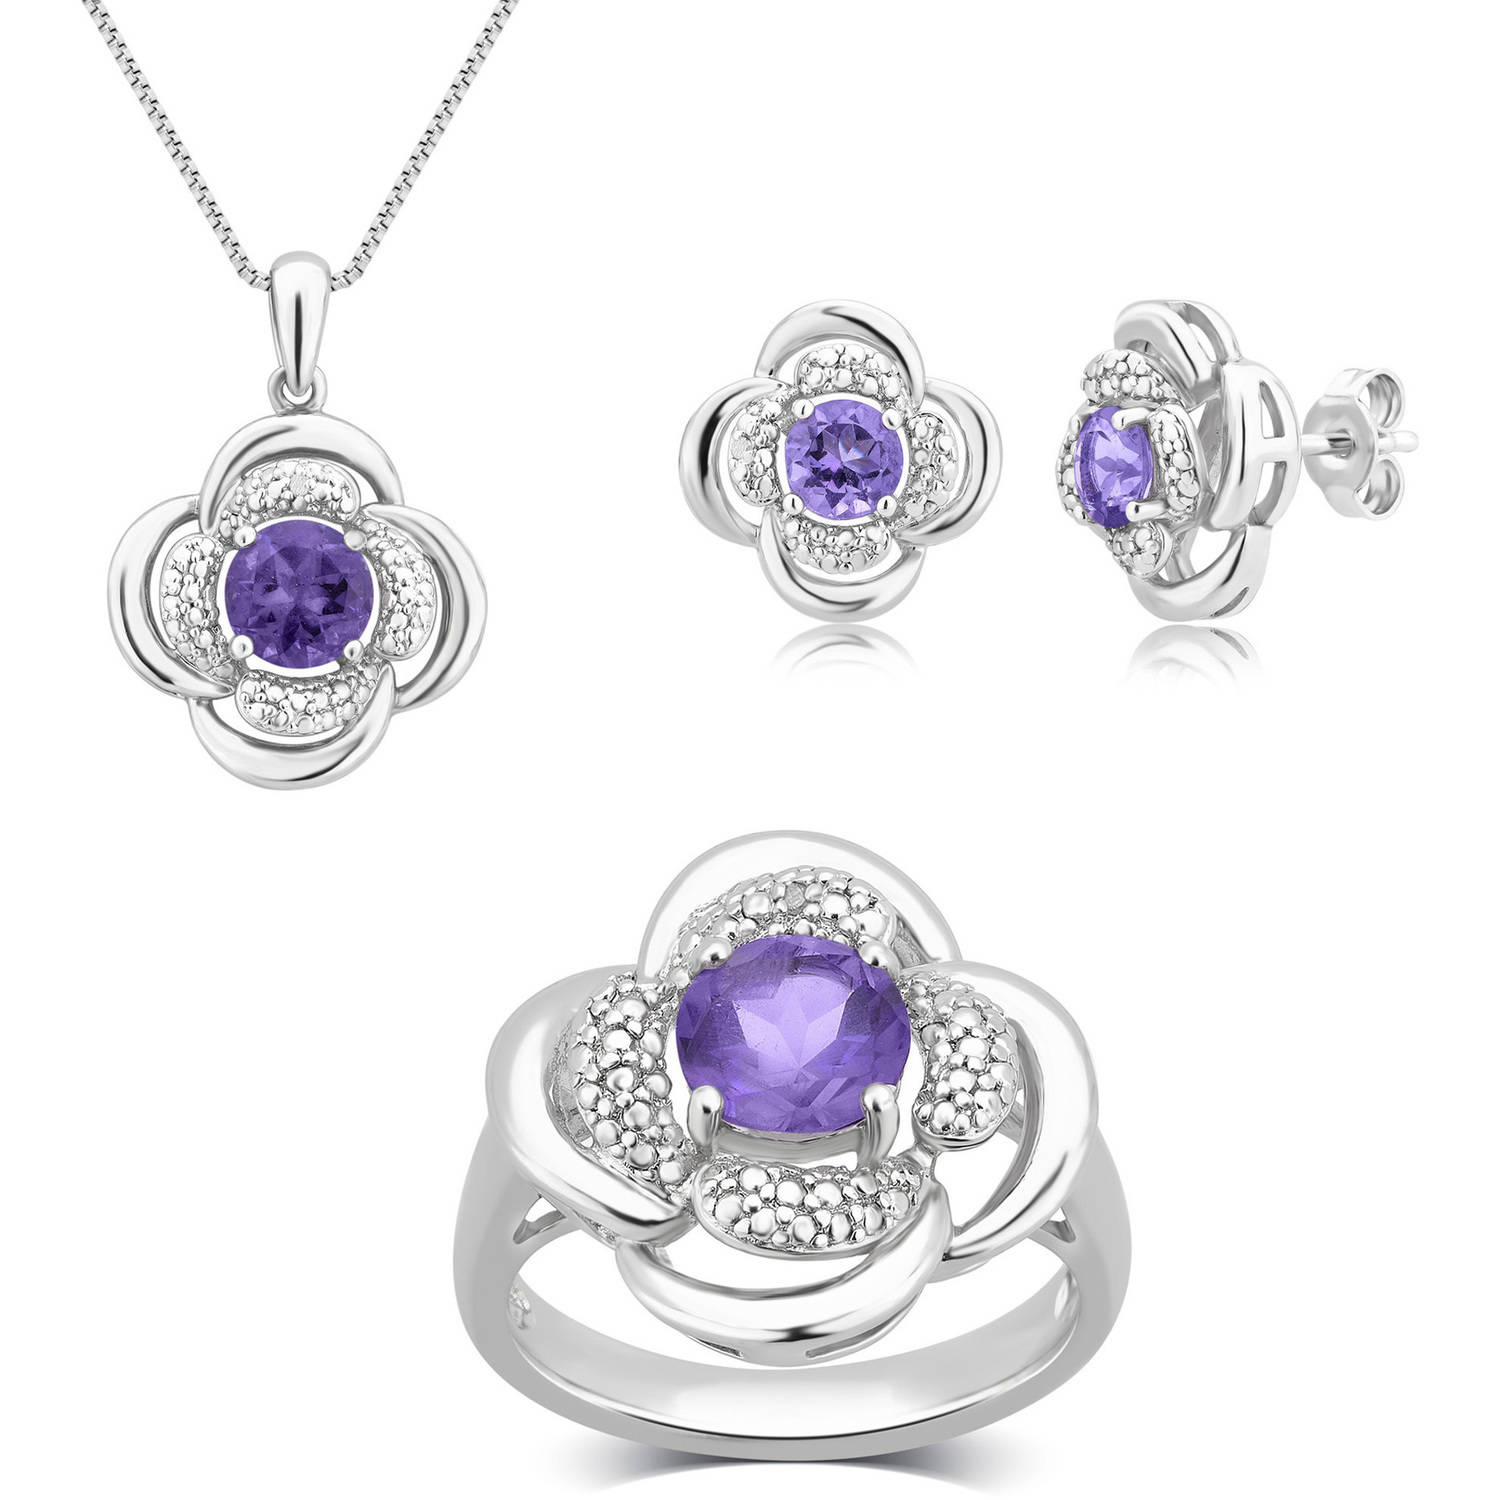 "Round White Diamond Accent and Amethyst Silver-Tone Brass Ring, Earrings and Pendant Set, 18"" by Unique Designs Inc."